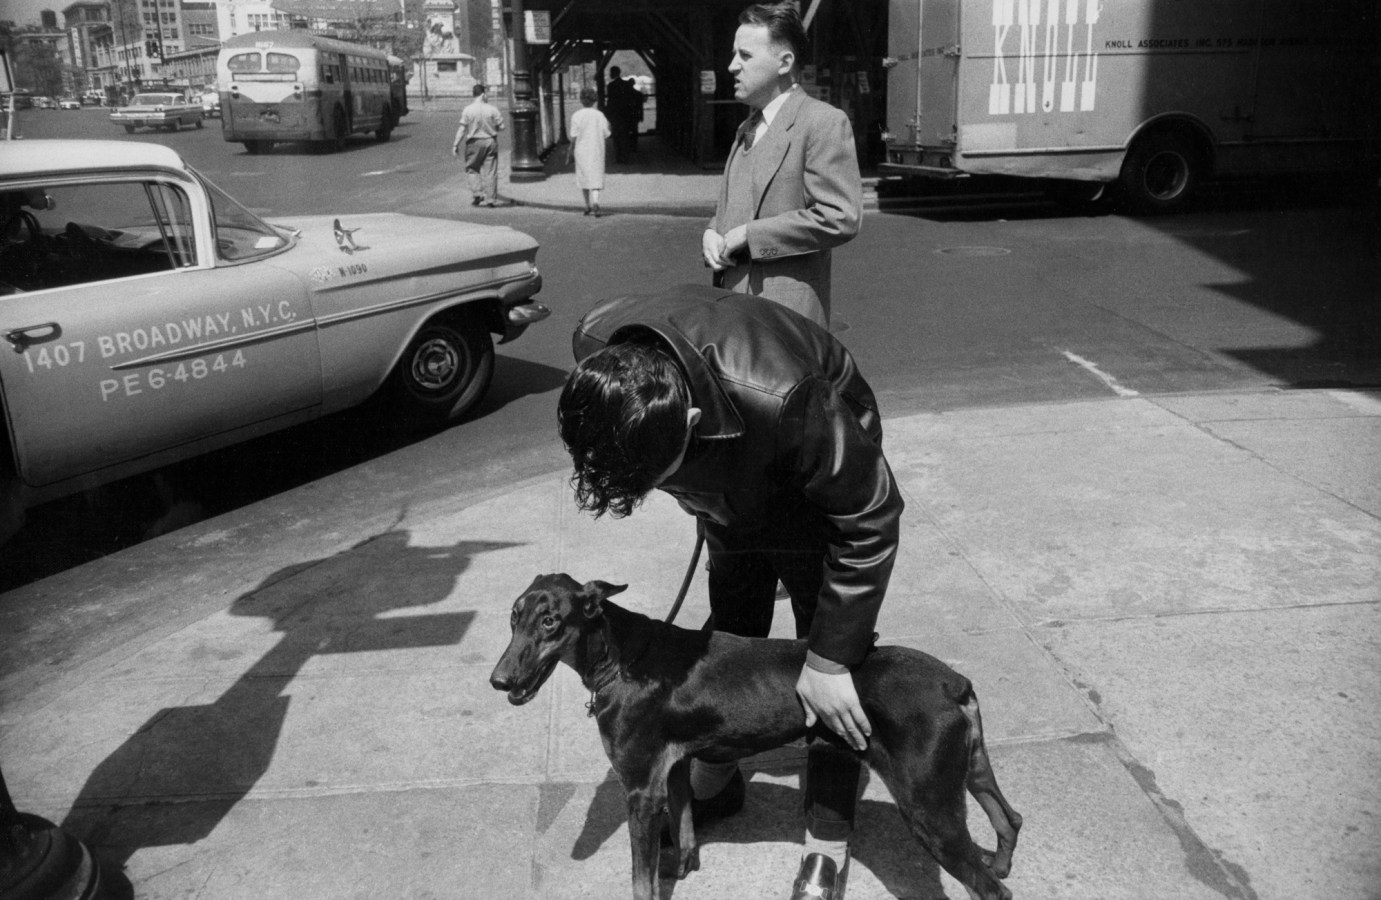 Black and white photograph of two men on the street, one leaning over a medium-sized black dog